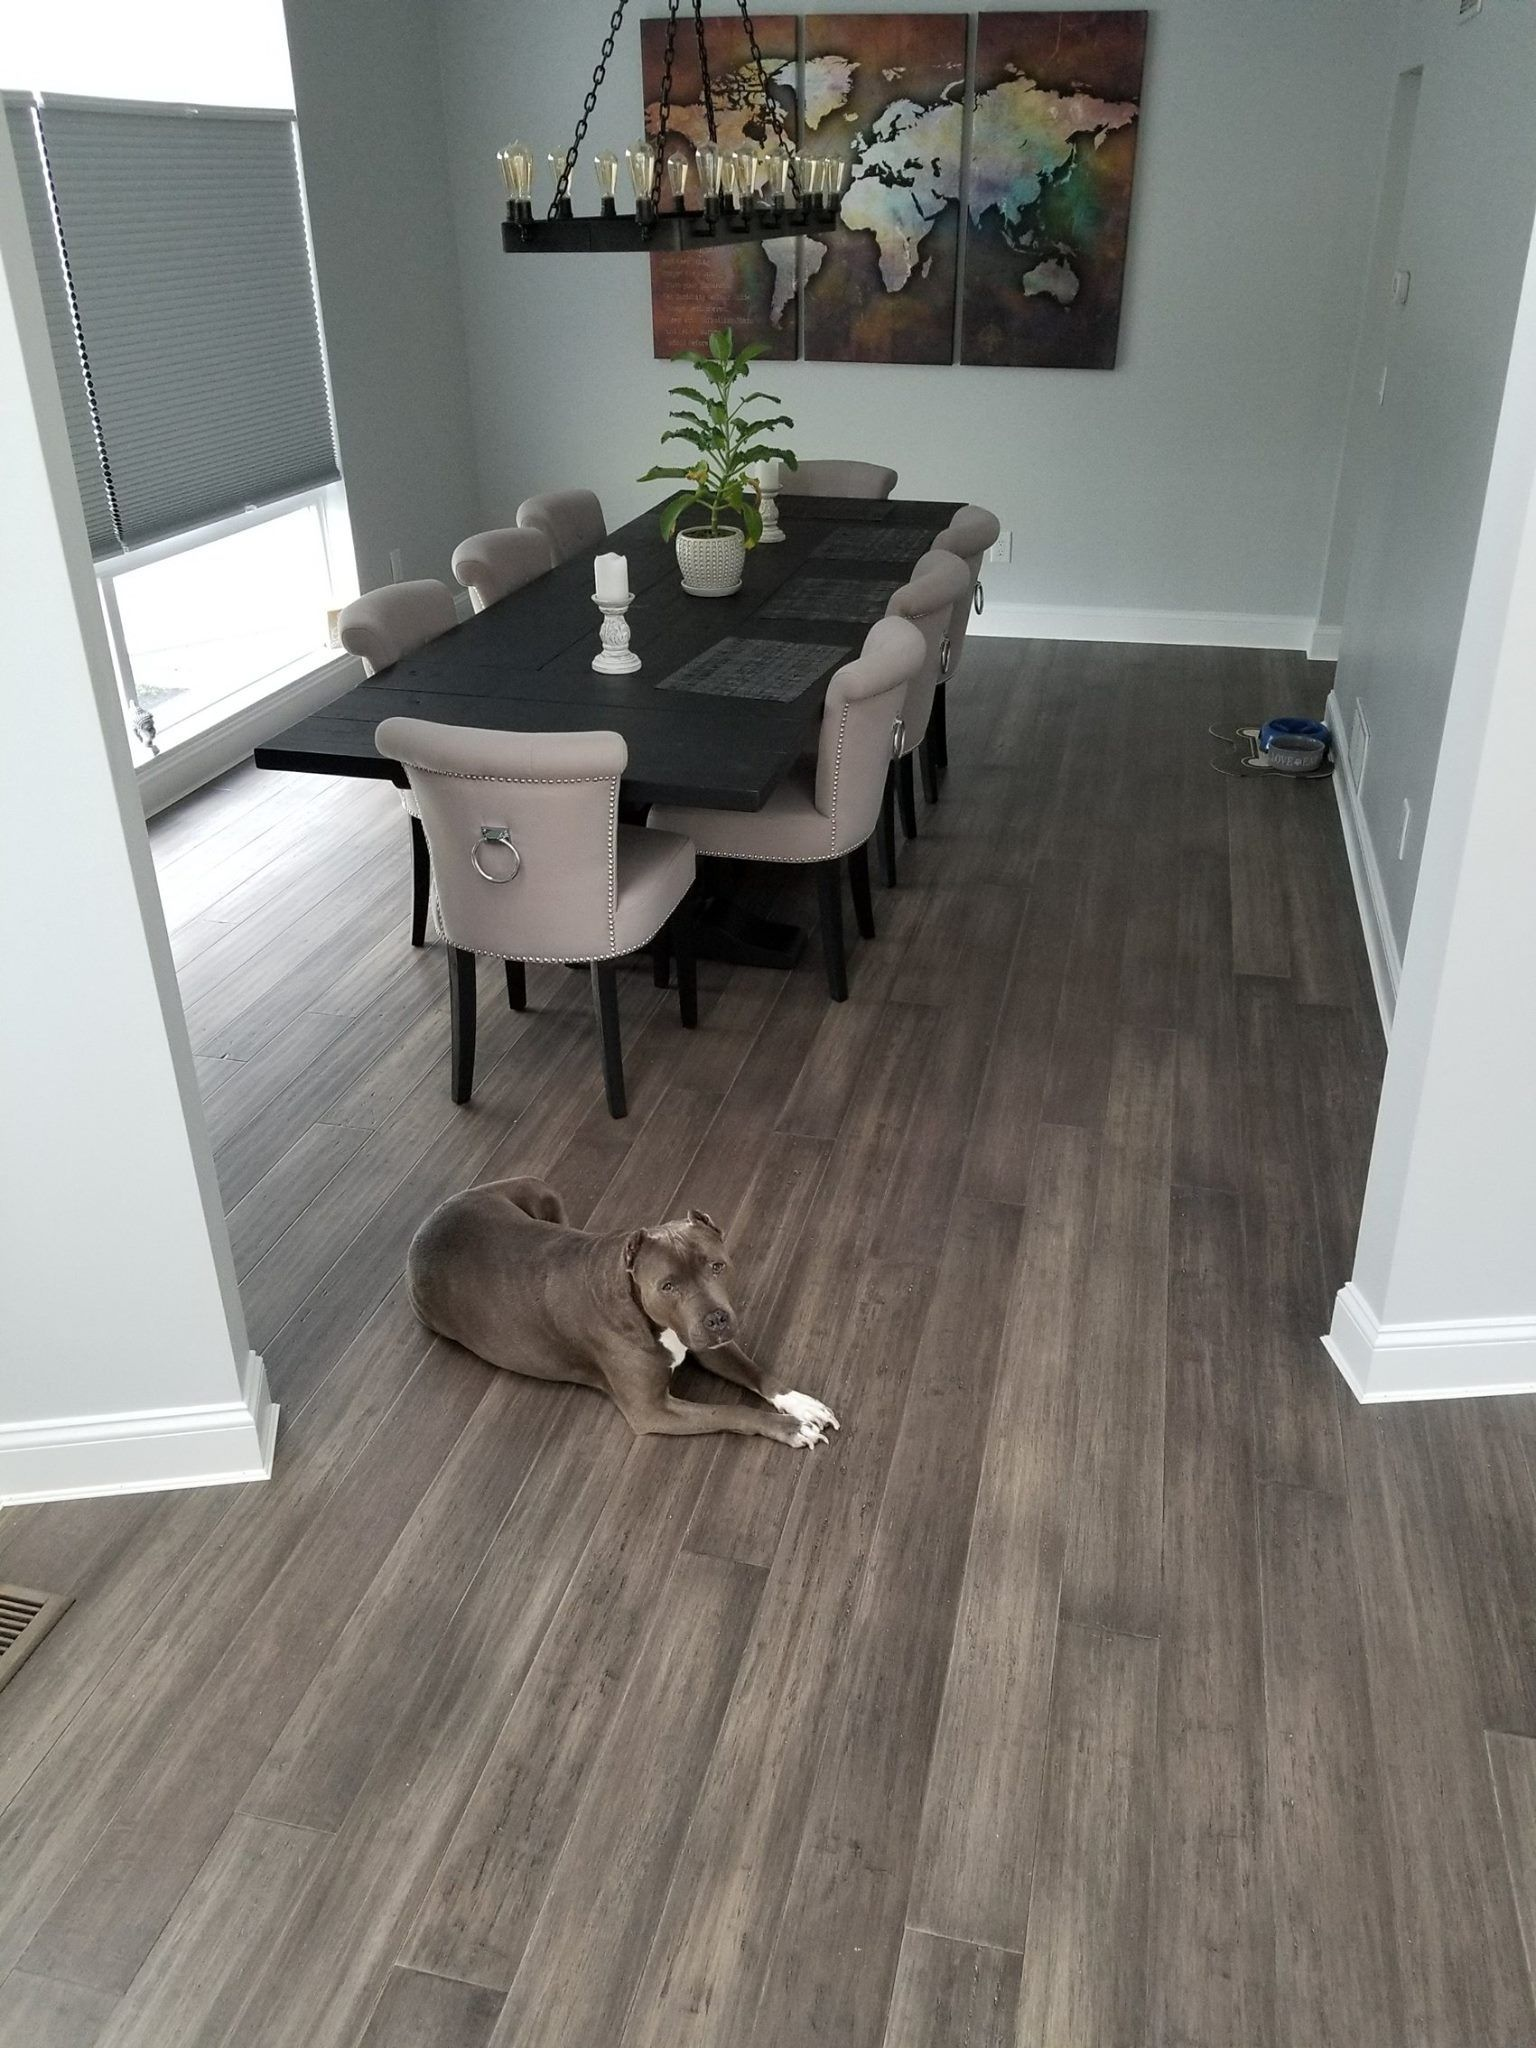 Grey Flooring Boardwalk Hardwood Bamboo Floors Bamboo Flooring Grey Flooring Flooring